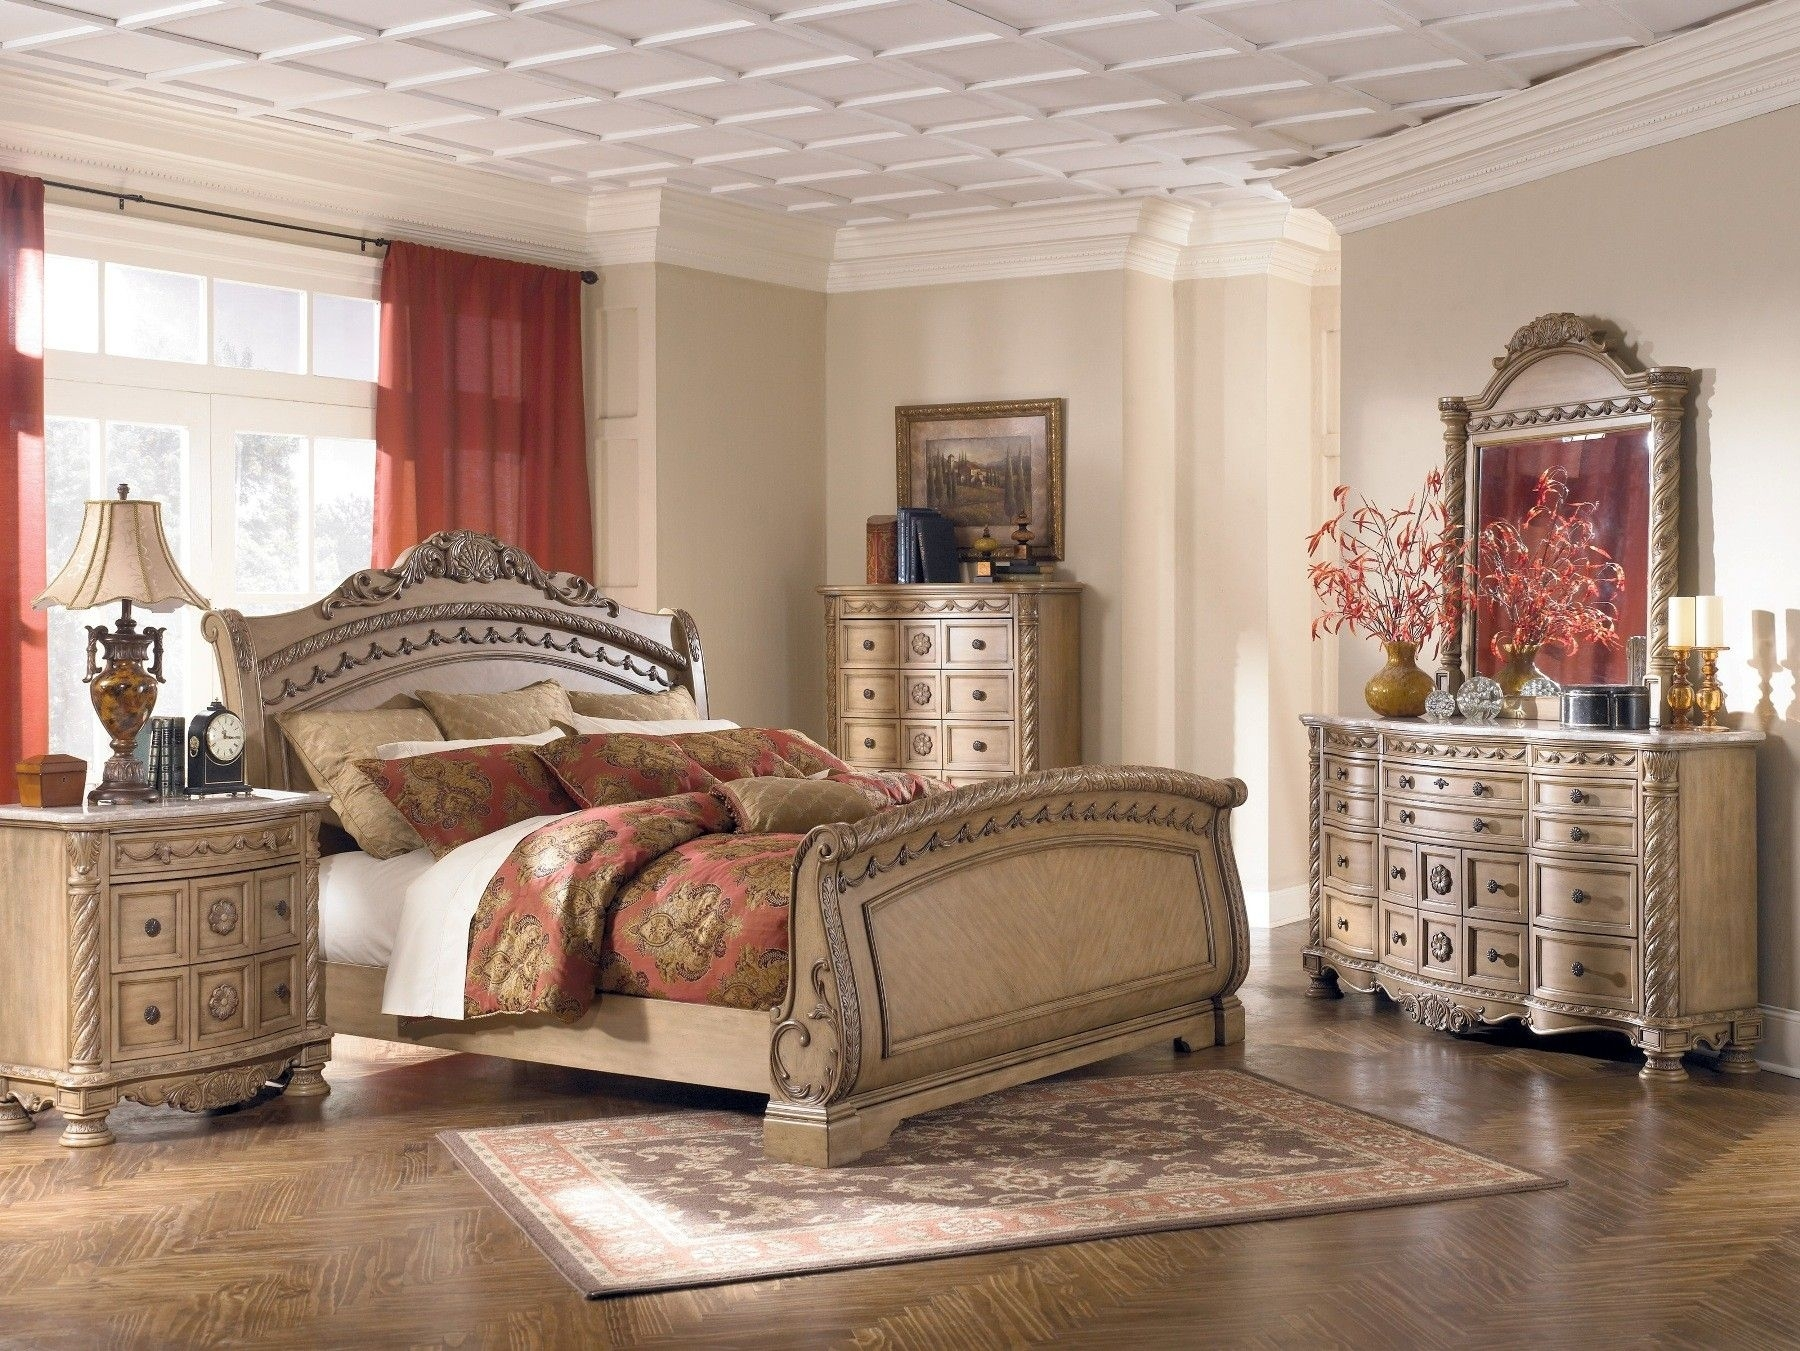 Old World Bedroom Sets Ideas On Foter